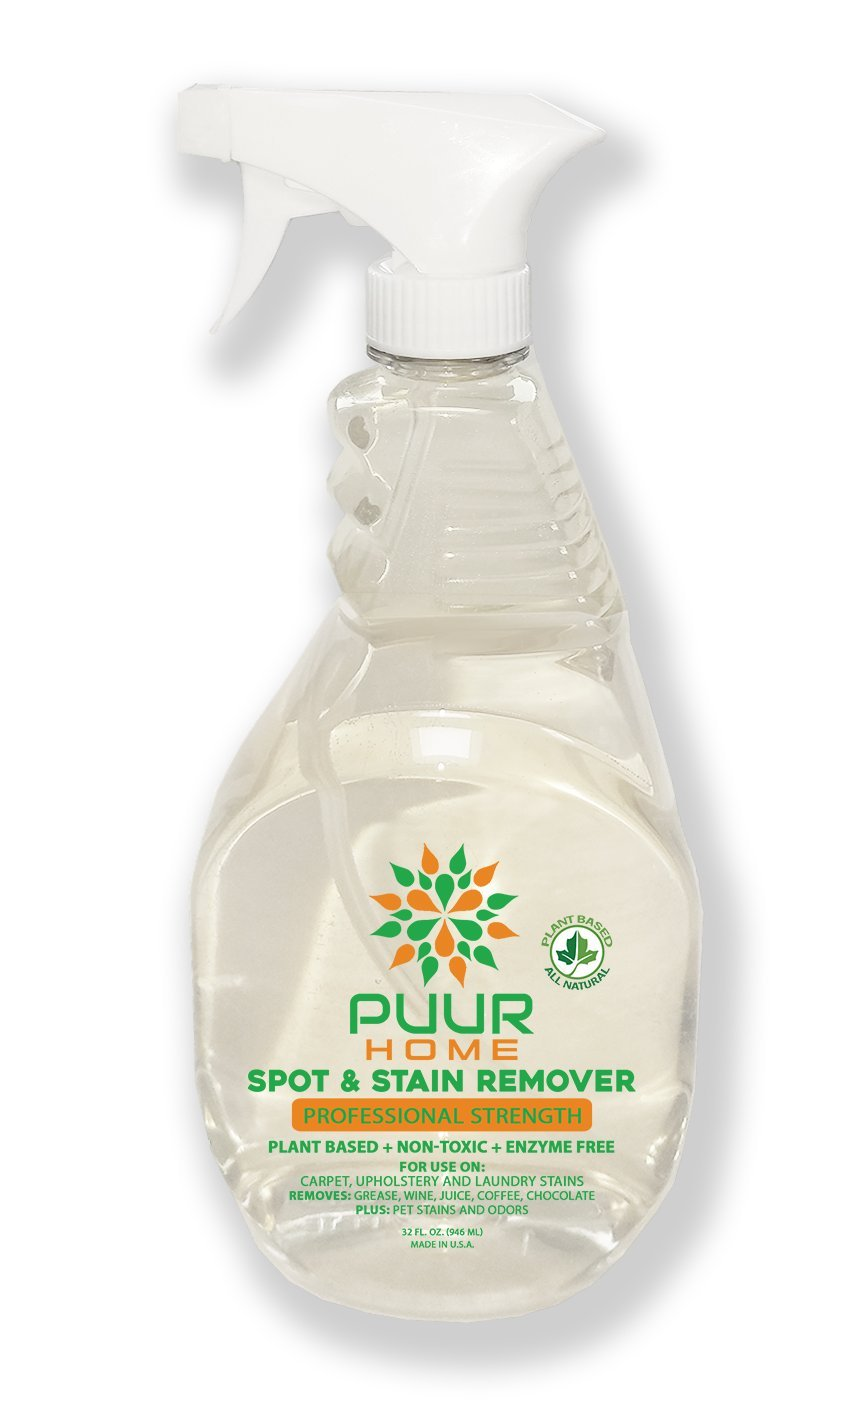 PUUR Home Natural Stain Remover 32 oz Spray - Laundry Spot and Odor Remover, Safe on All Fabrics - Biodegradable - Non Toxic - Child and Pet Safe